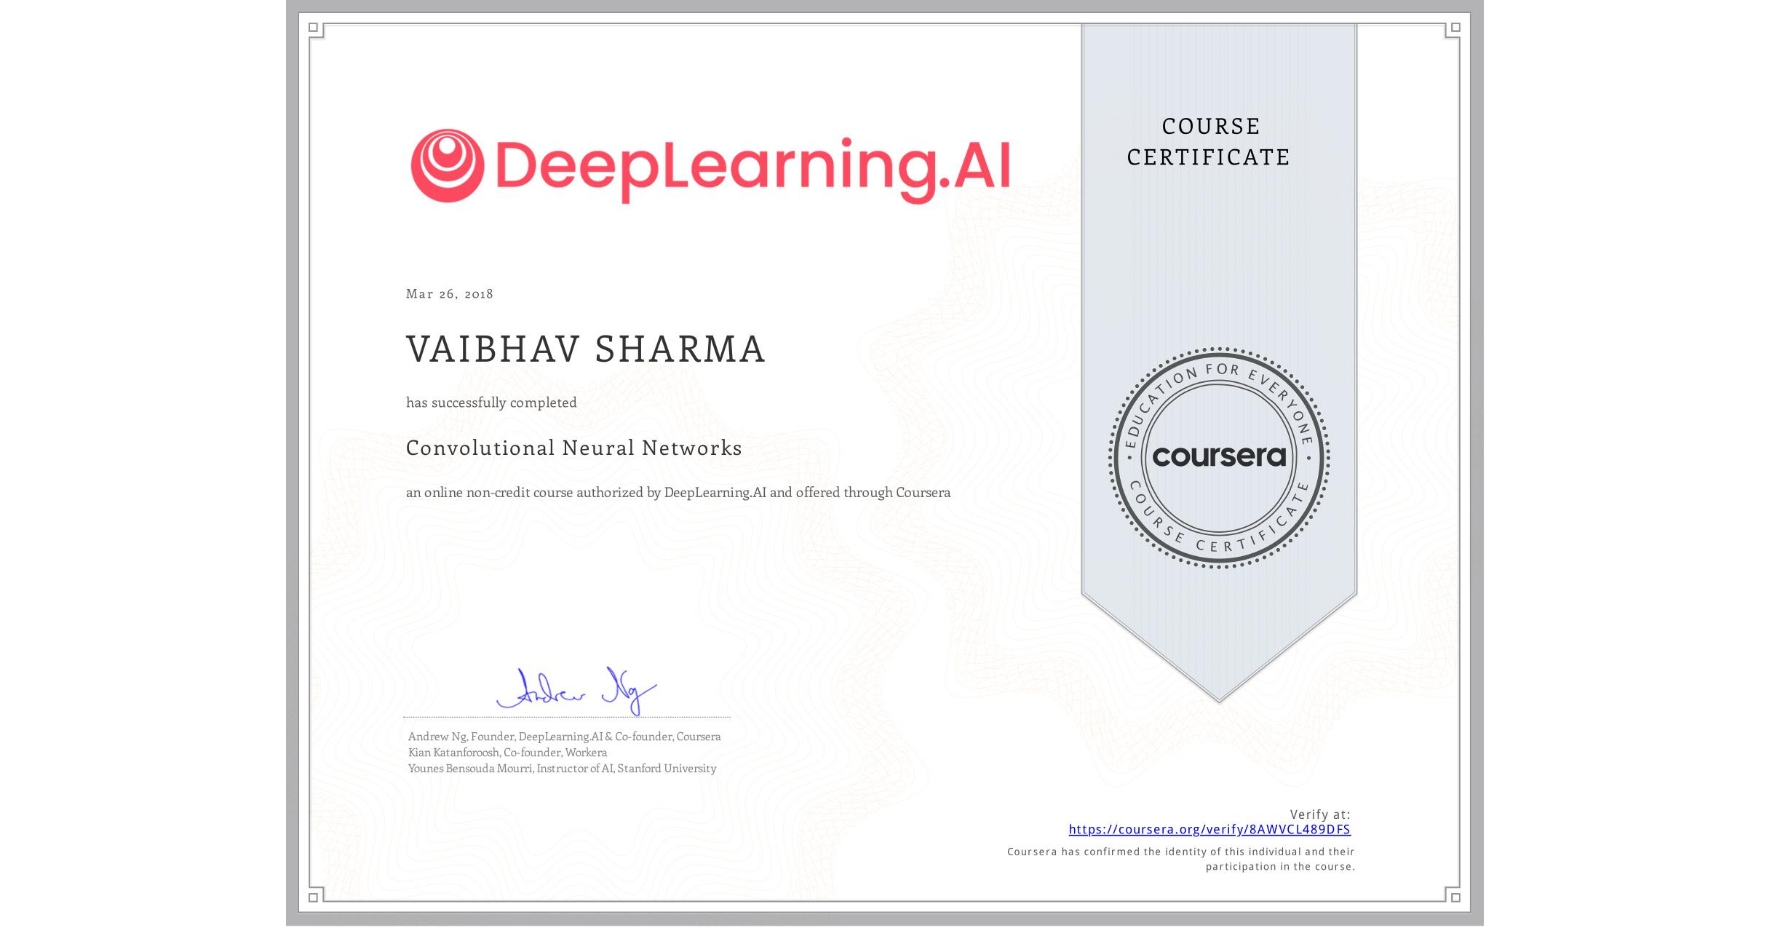 View certificate for VAIBHAV SHARMA, Convolutional Neural Networks, an online non-credit course authorized by DeepLearning.AI and offered through Coursera